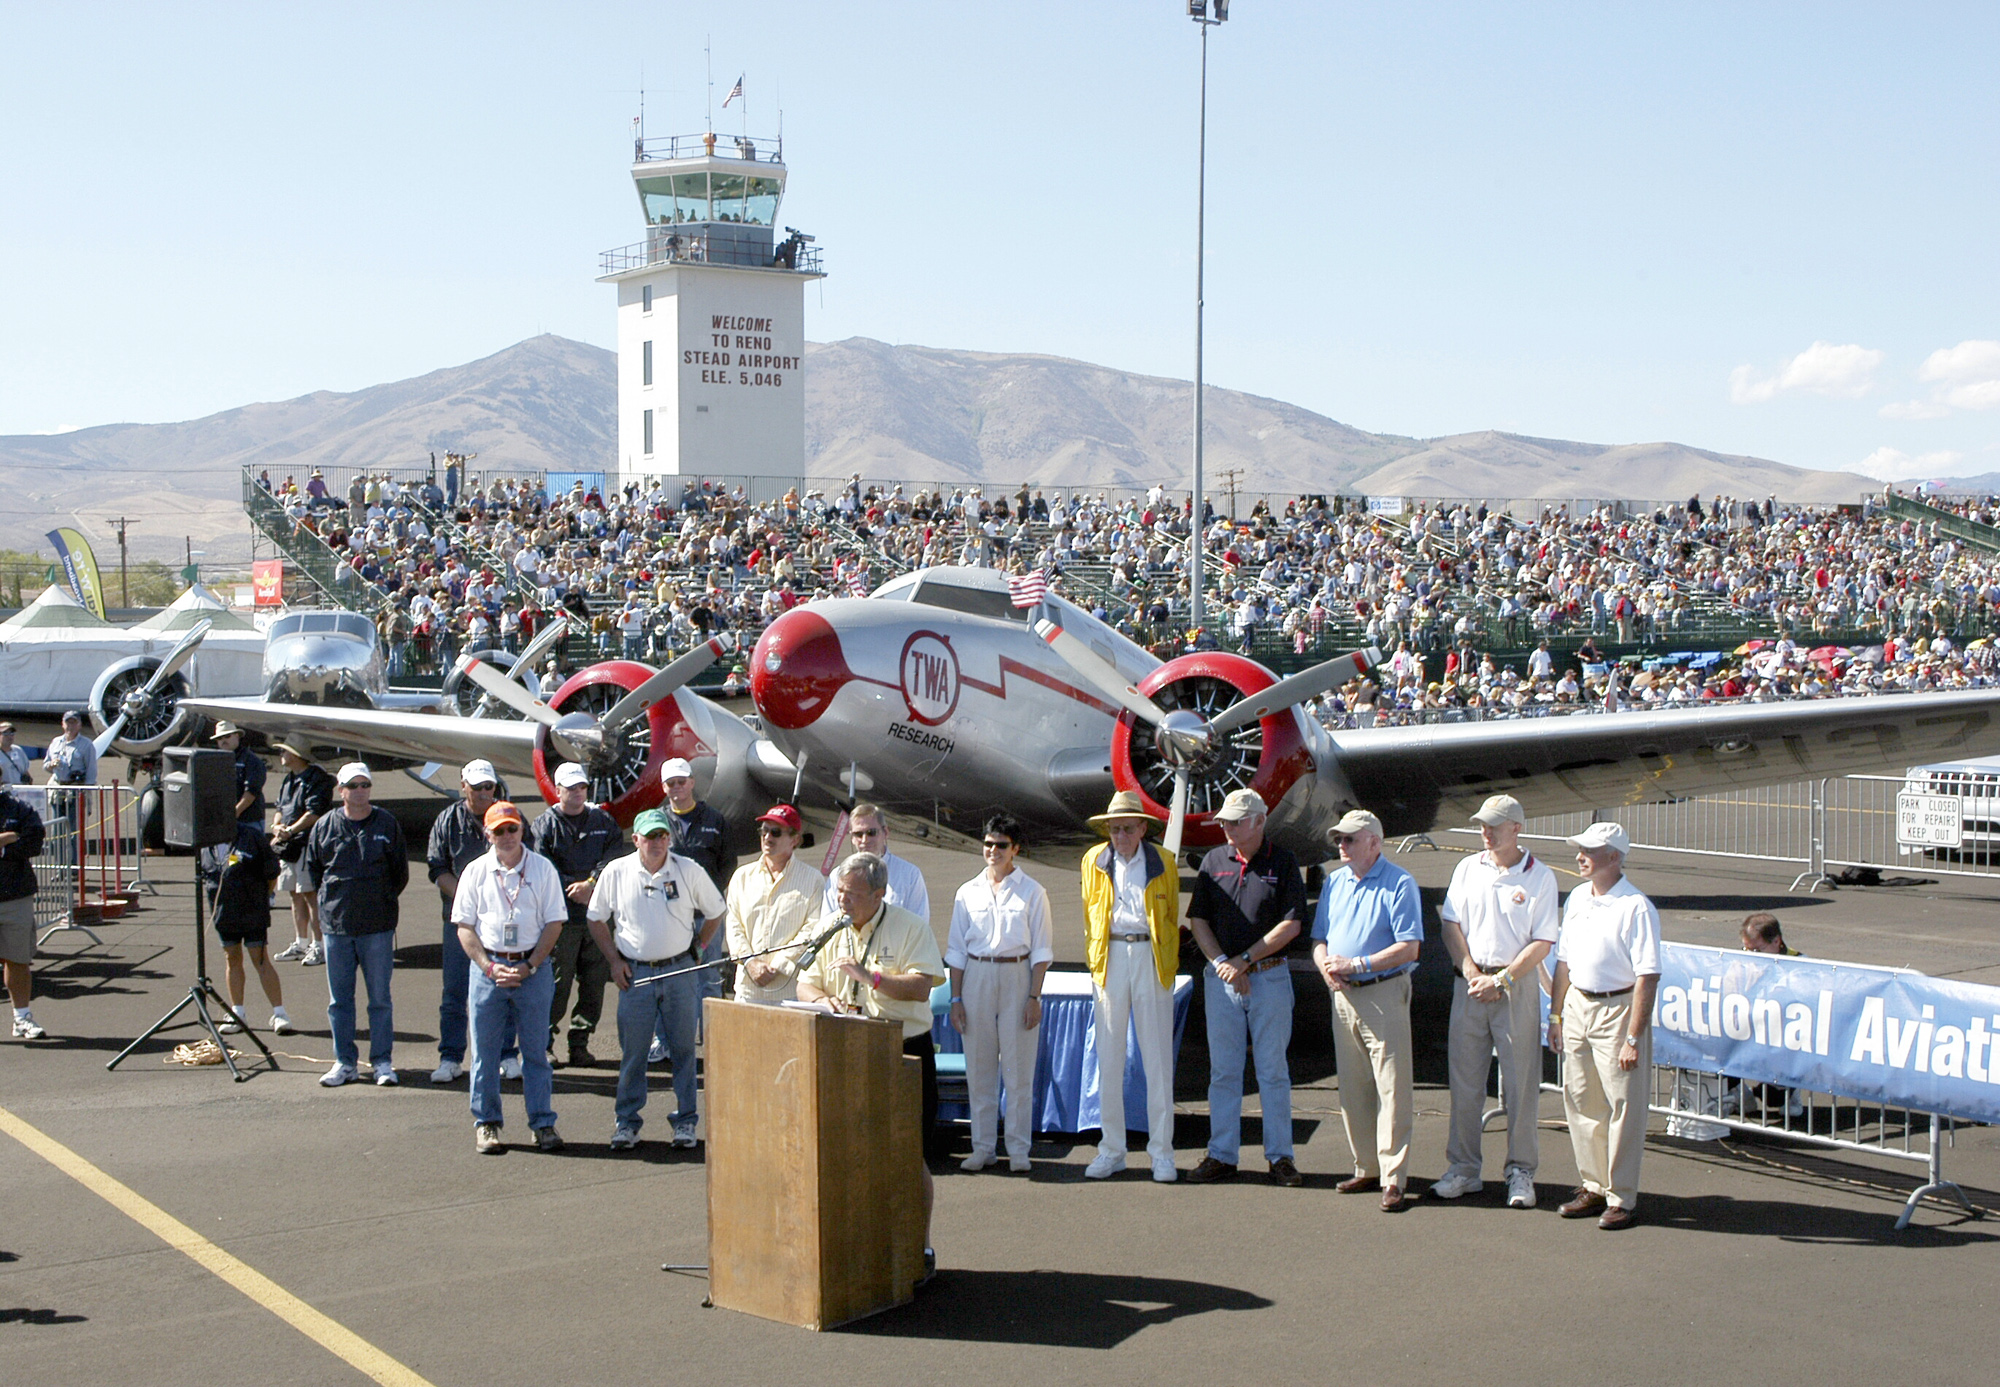 Rolls-Royce Recognizes Winners at the 2007 National Aviation Heritage Invitational